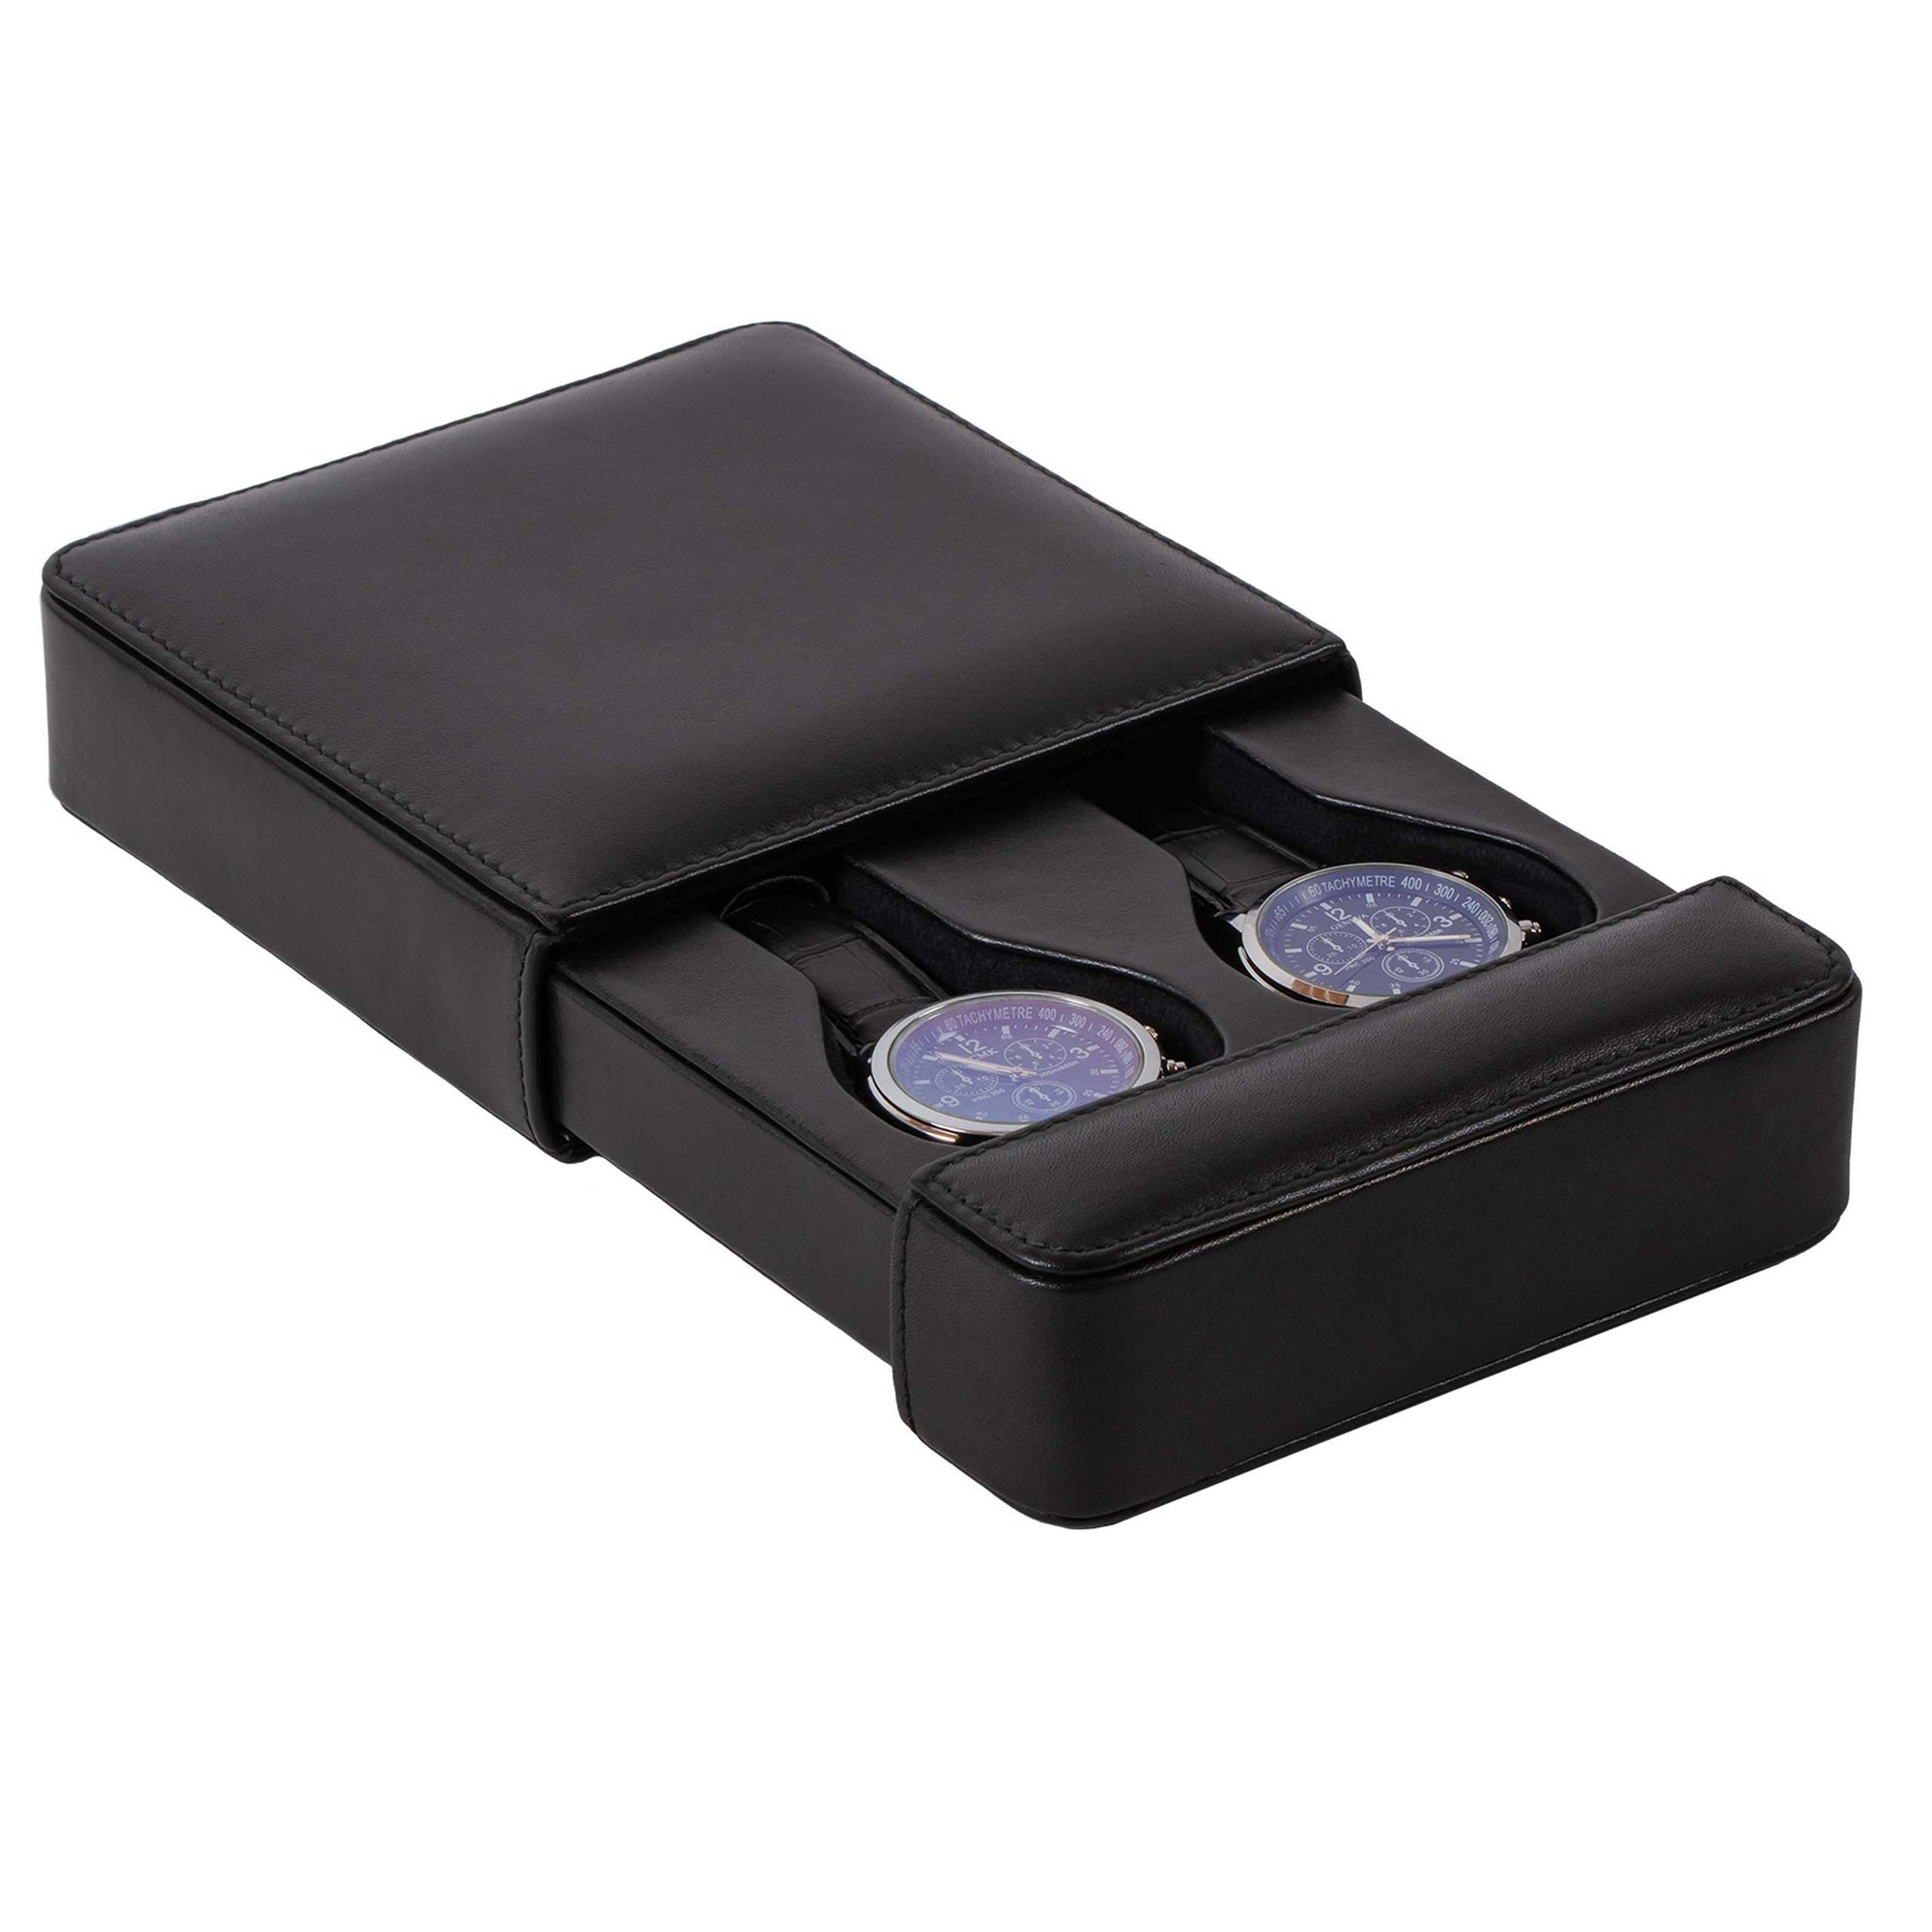 DiLoro Italian Leather Double Travel Watch Box Case Holder in Black - Open with 2 Men's Wrist Watches (not included)